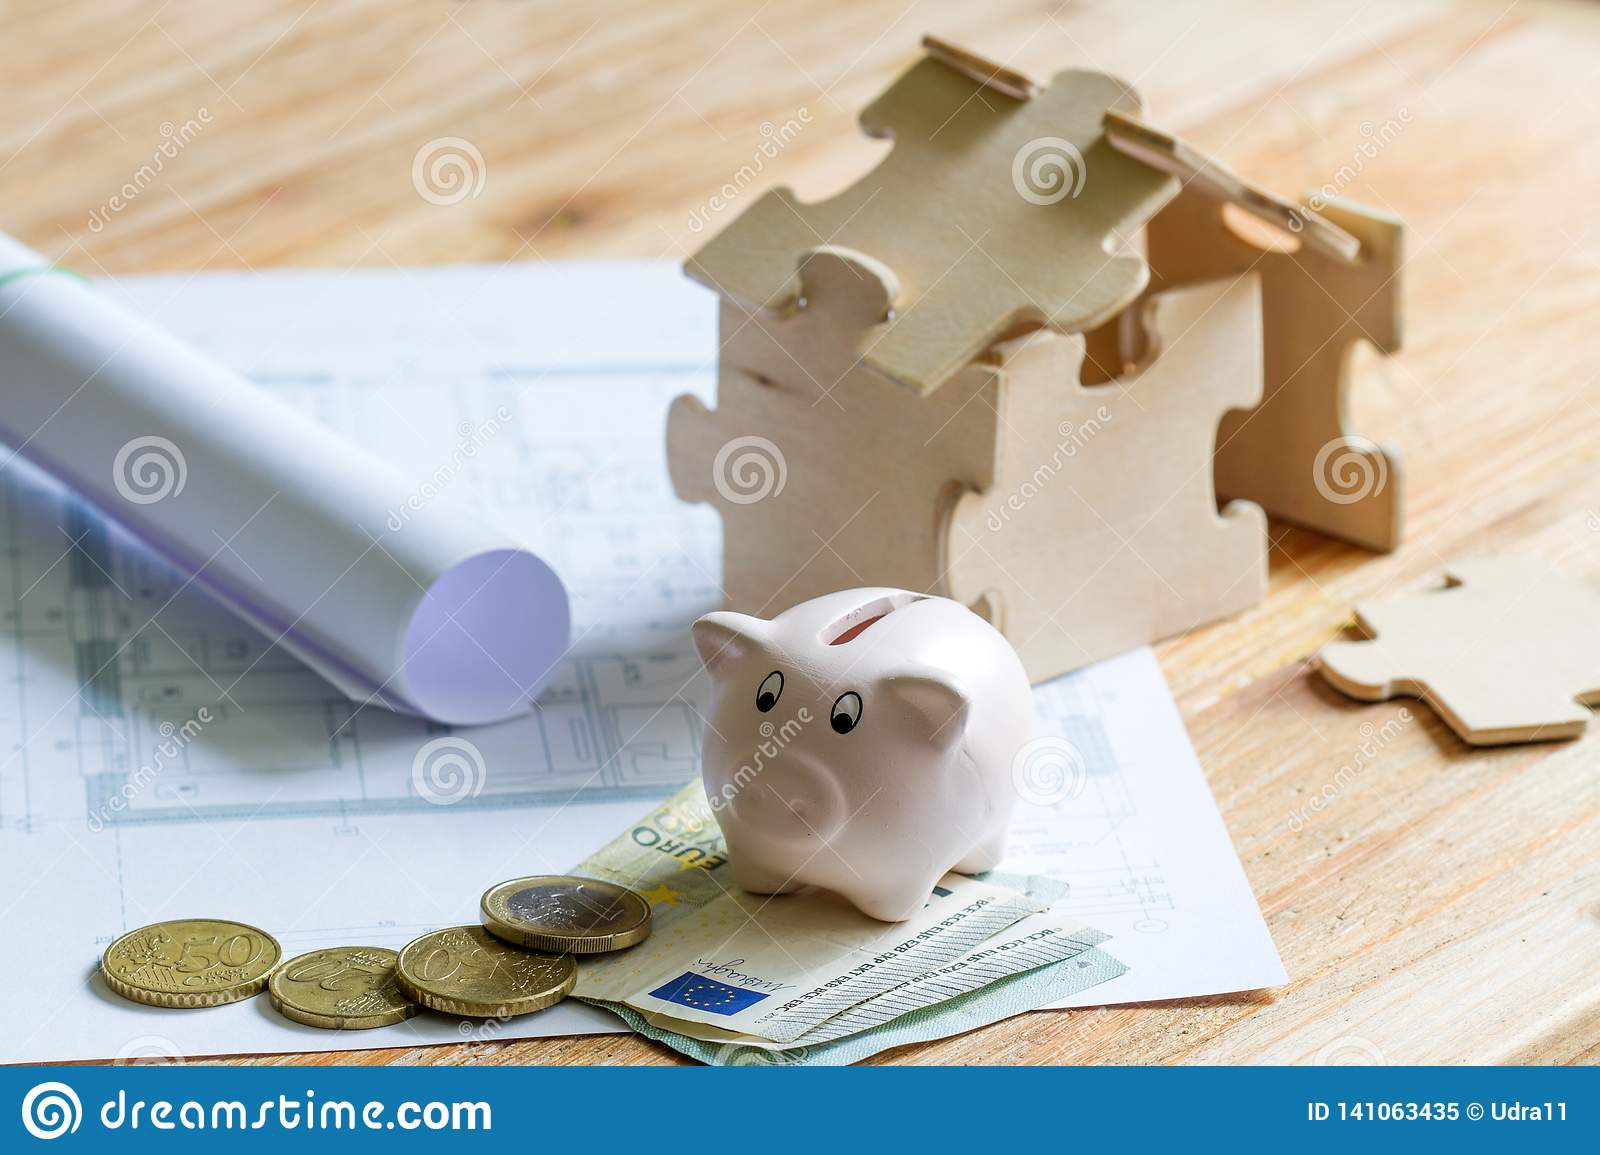 House with puzzles and planning expenses for building a house abstract concept